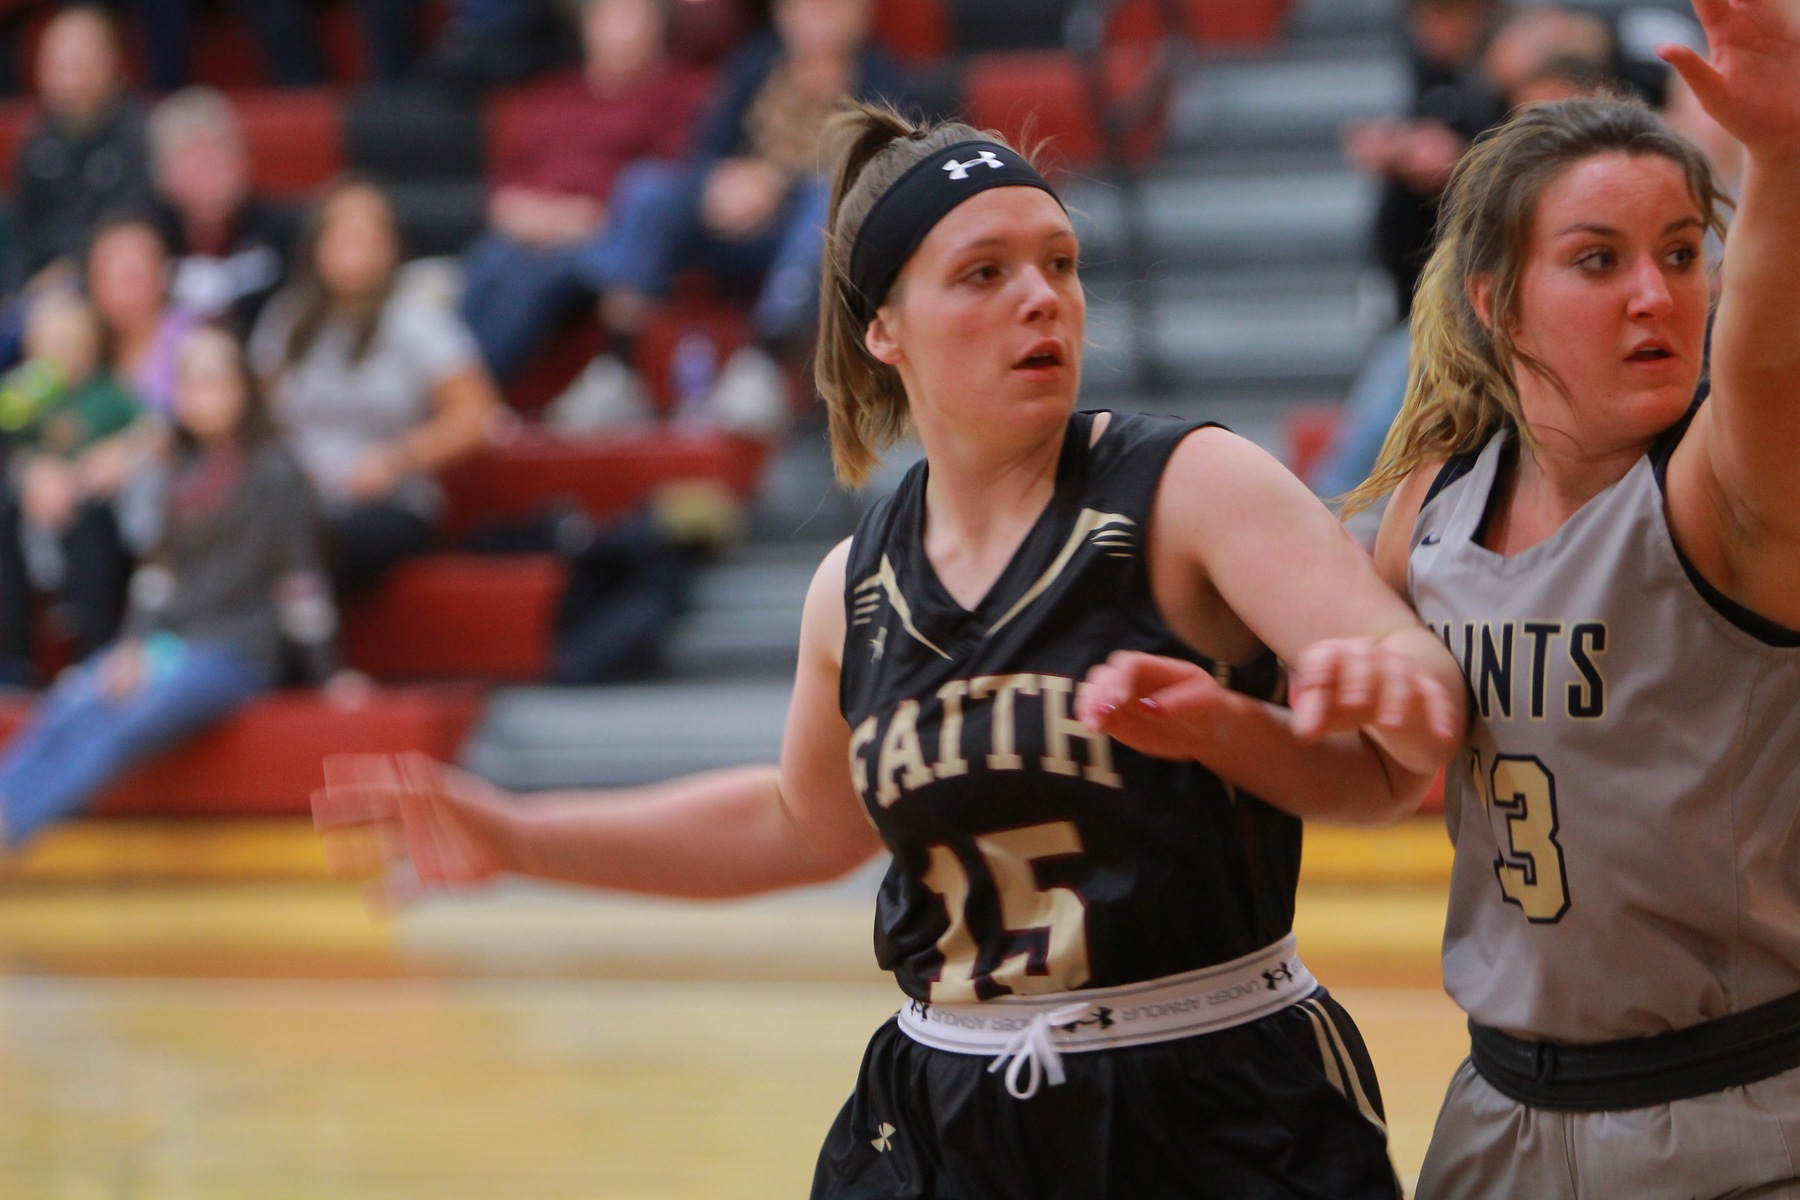 Michaela Crider led the Faith Eagles with 10 points against North Central in a 70-29 loss.